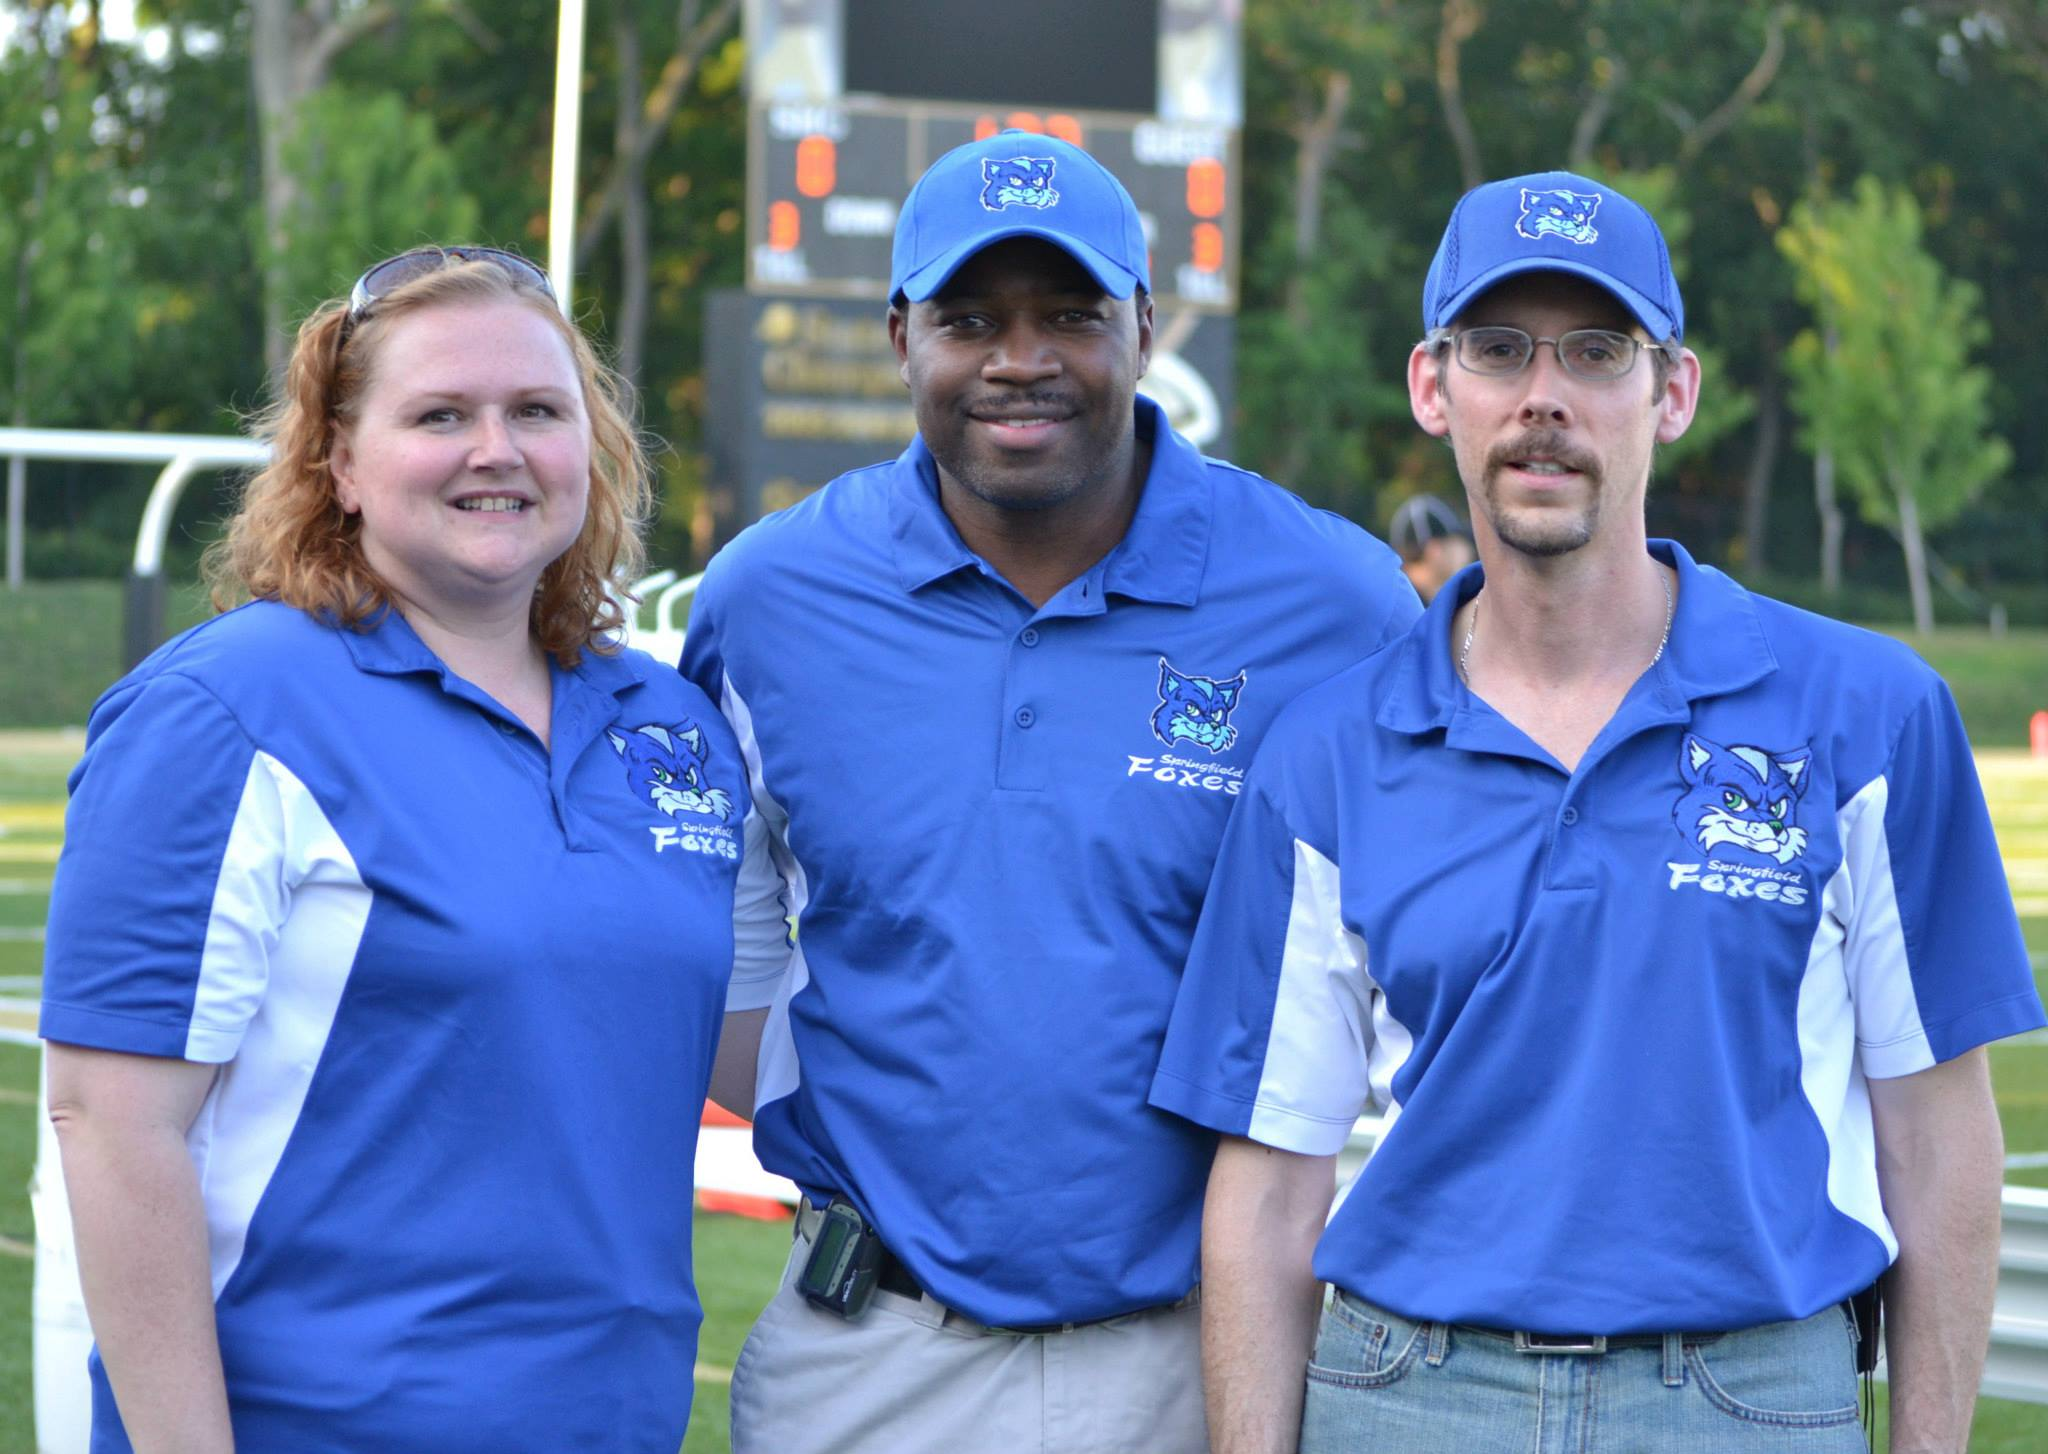 Orthopedic Surgeon Dr. Saadiq El-Amin, M.D. (middle) has joined the Foxes Healthcare / Training staff for the 2013 season.